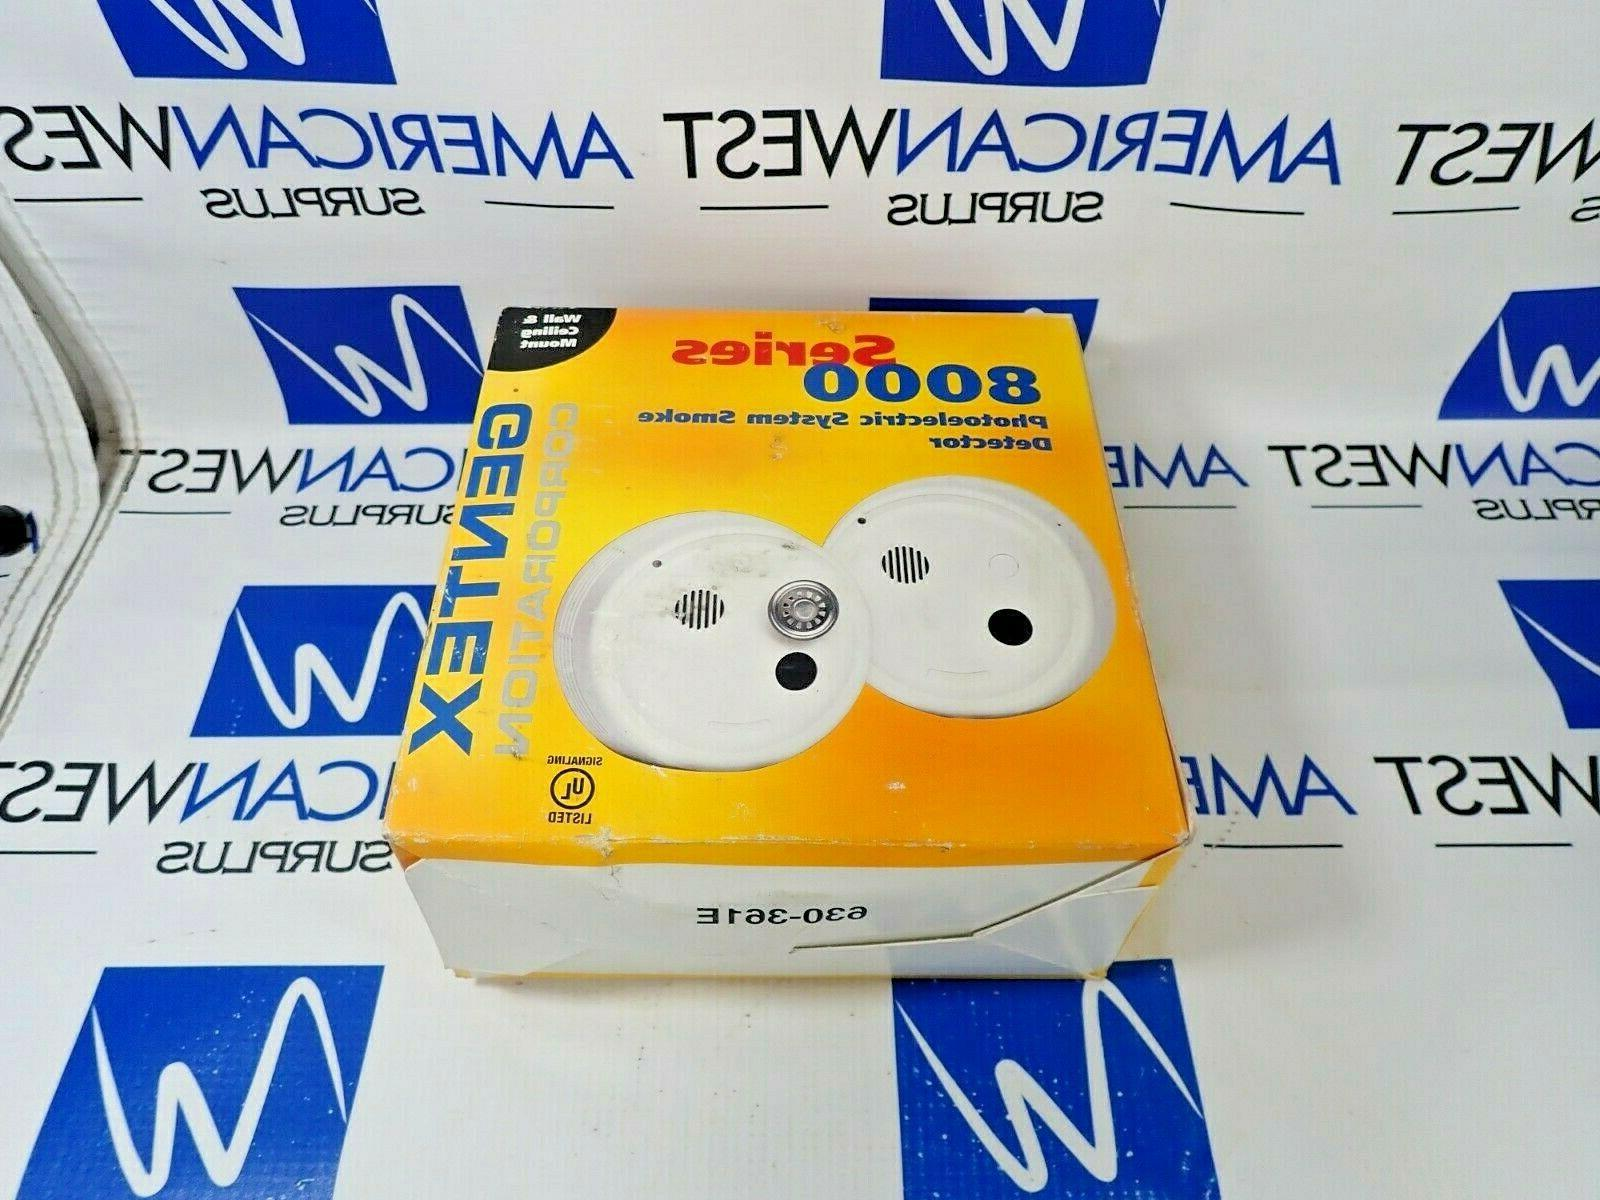 8100t photoelectric 4 wire smoke detector 120vac